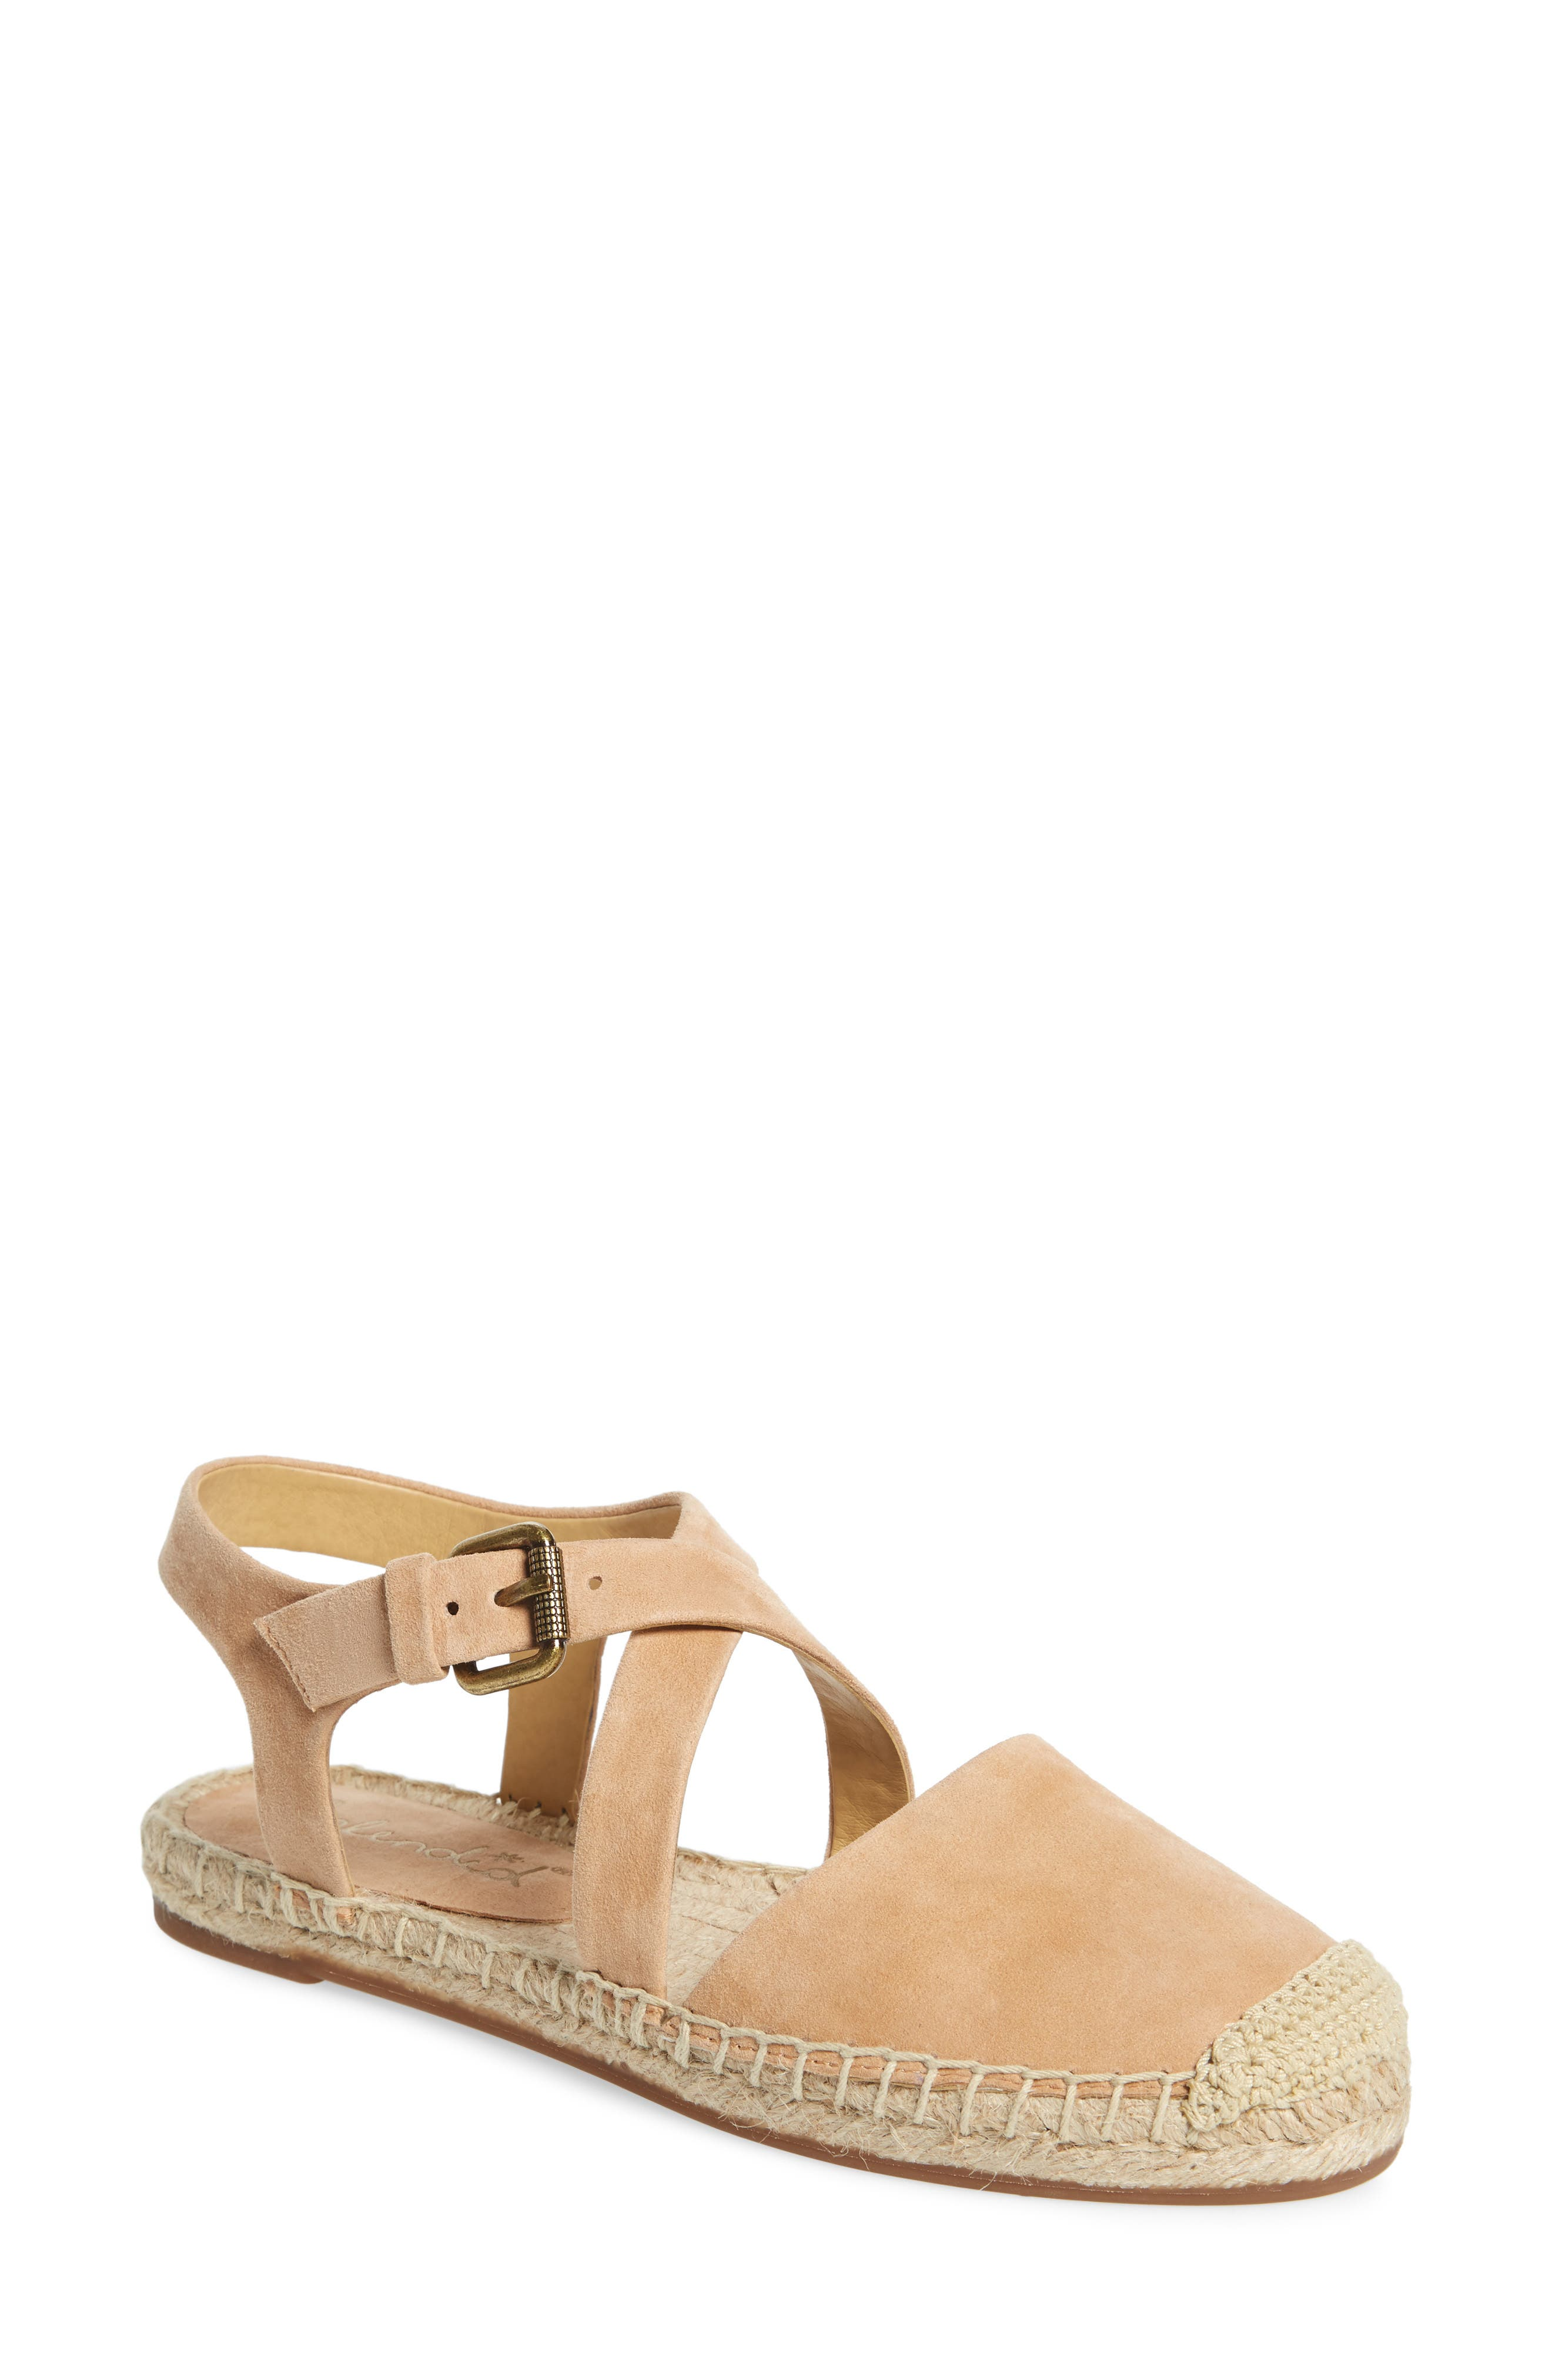 Foley Espadrille Flat,                             Main thumbnail 1, color,                             Nude Suede